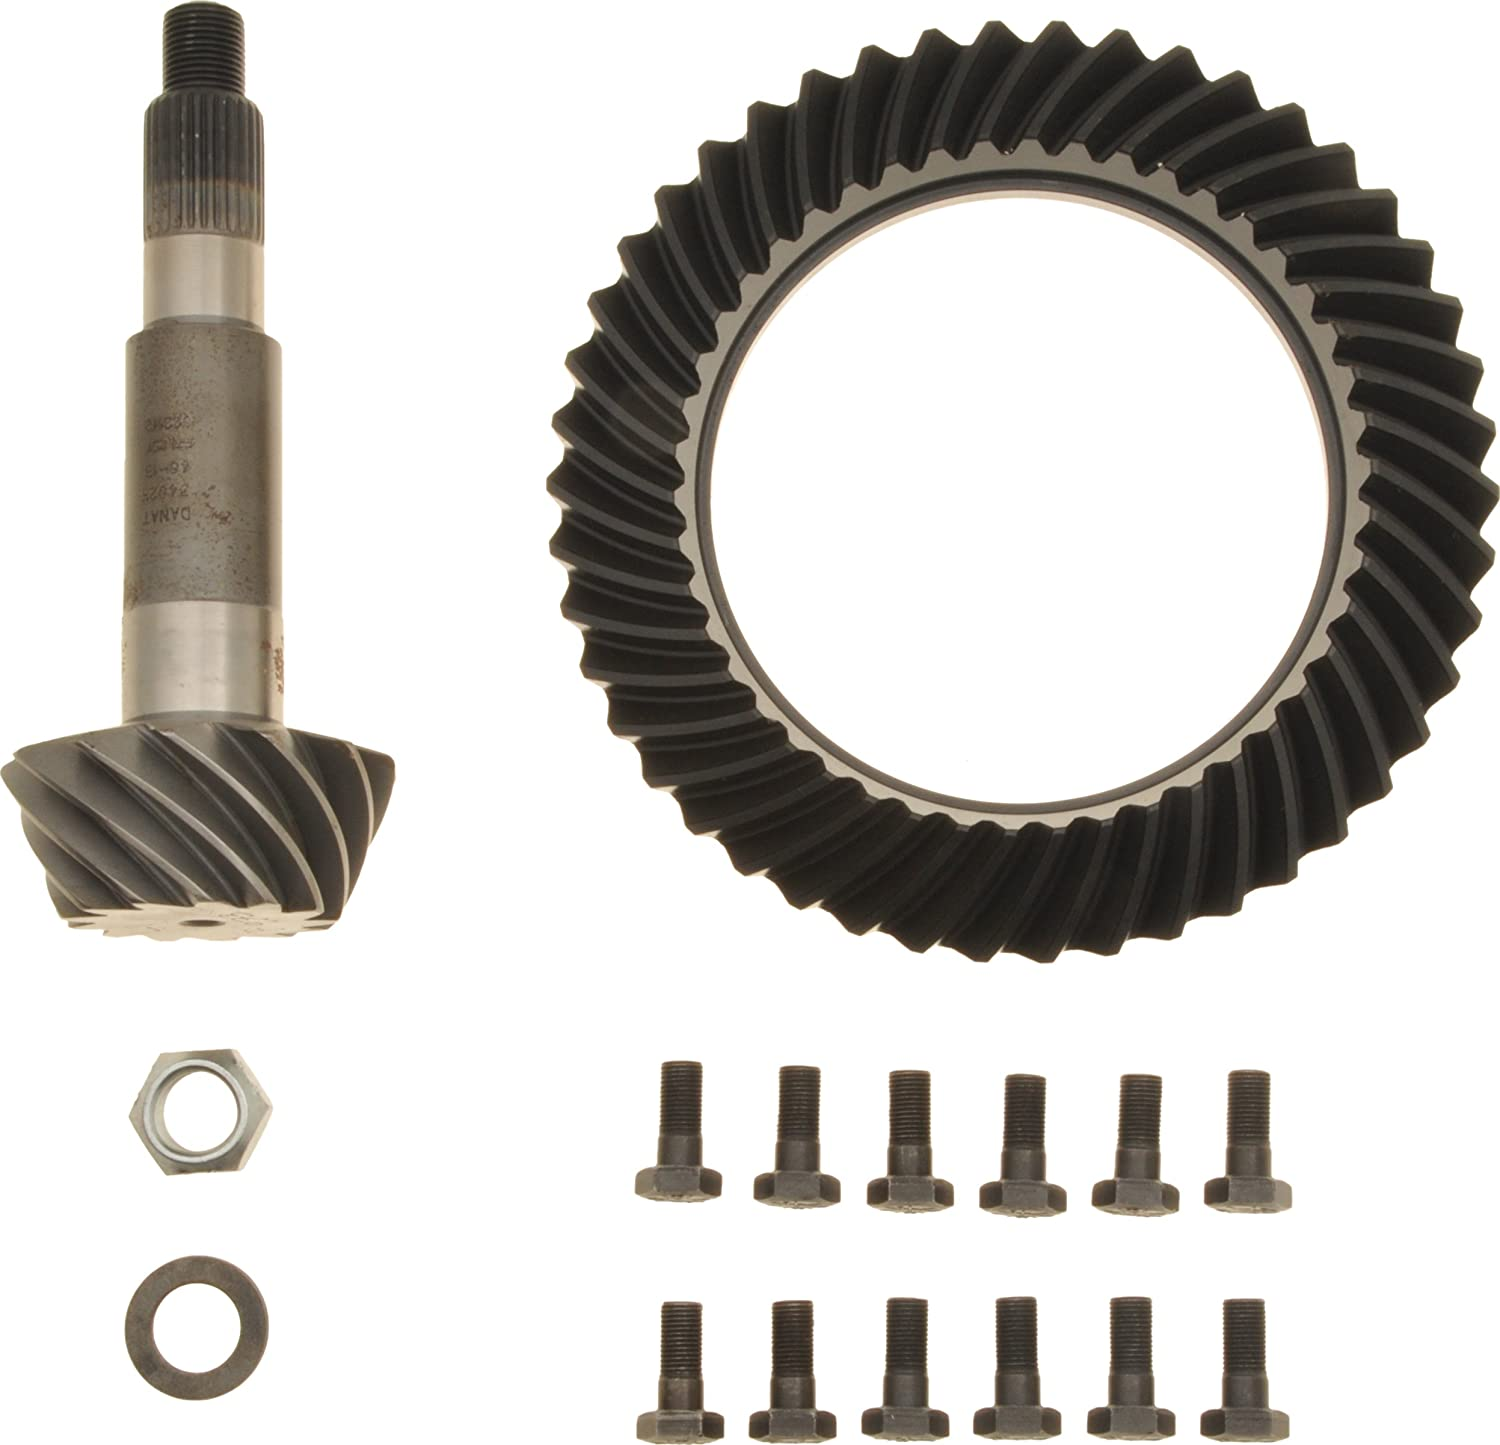 Spicer 2019752 Ring and Pinion